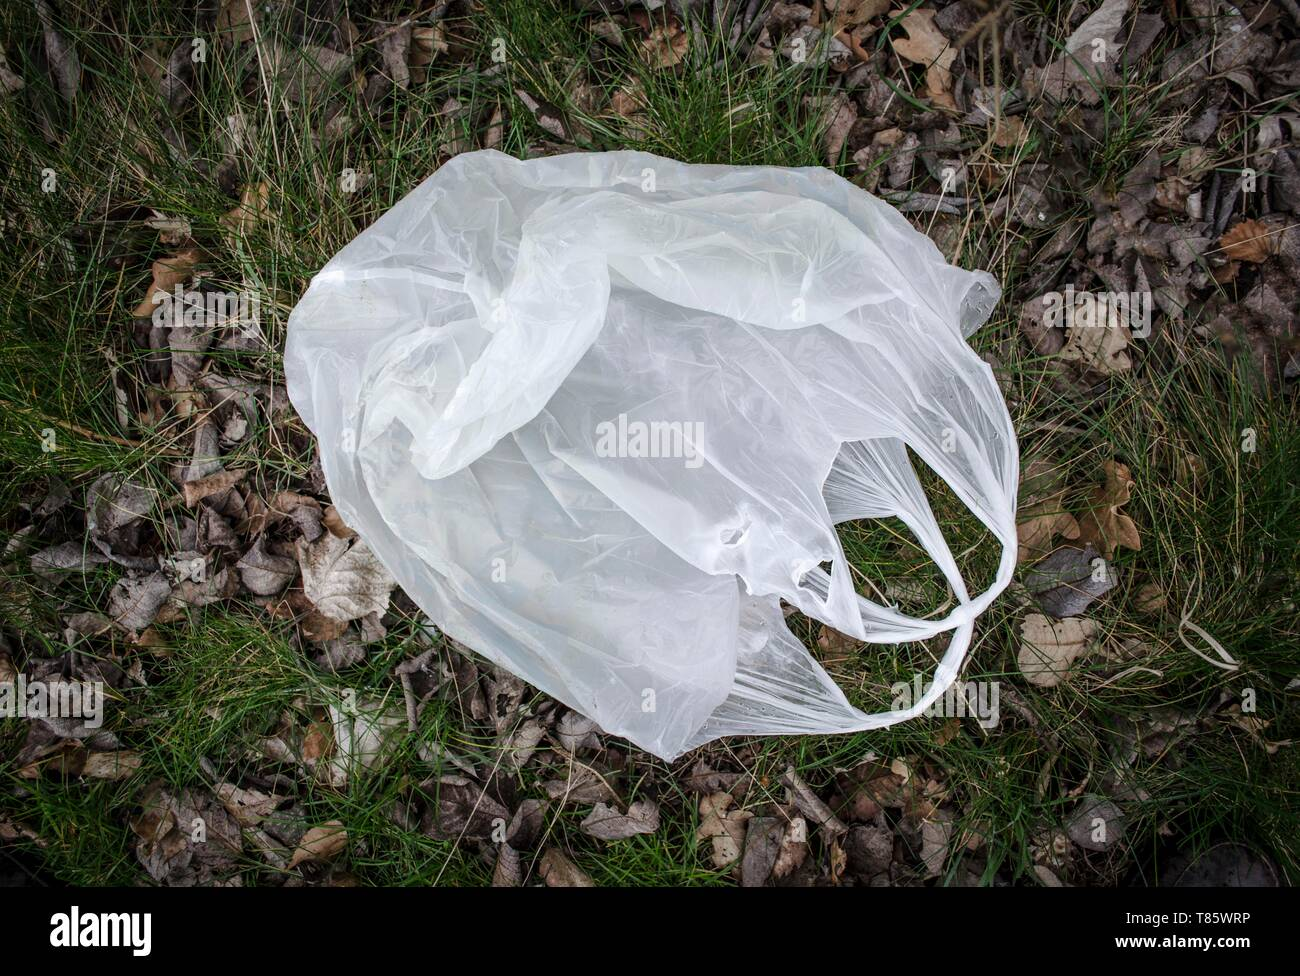 Discarded plastic bag - Stock Image